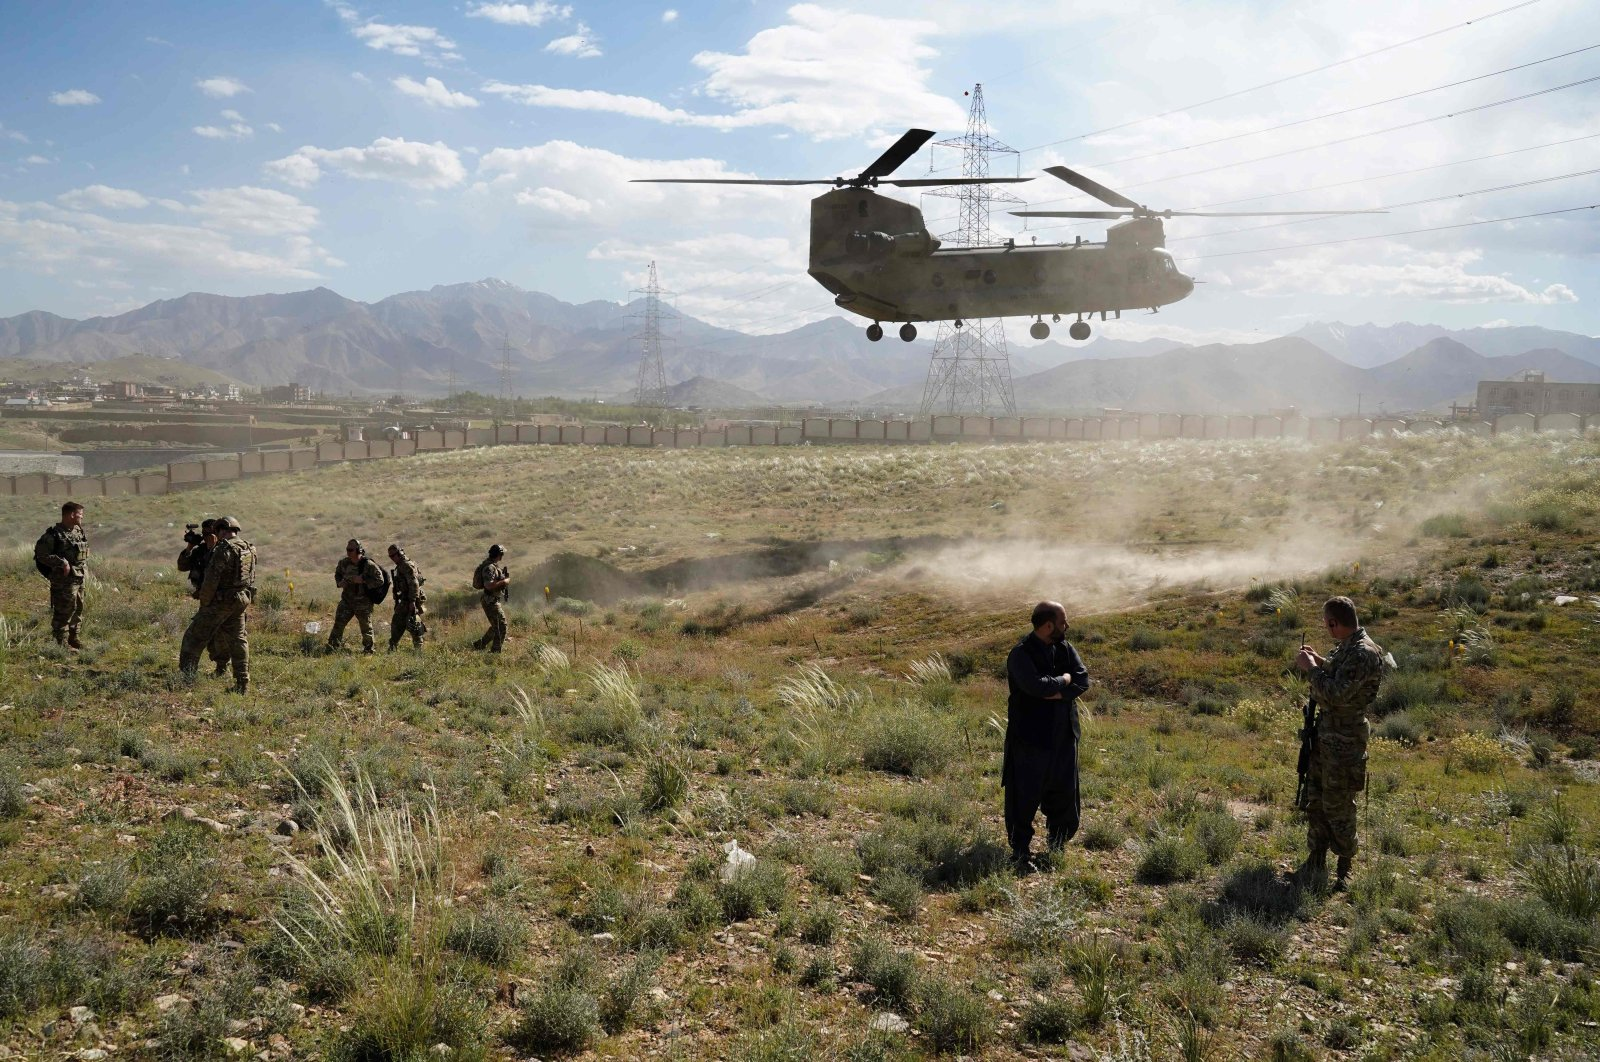 In this June 6, 2019, file photo, a U.S. military helicopter lands on a field outside the governor's palace during a visit by the commander of U.S. and NATO forces in Afghanistan, General Scott Miller, and Asadullah Khalid, acting minister of defense of Afghanistan, in Maidan Shar, capital of Wardak province, Afganistan. (AFP Photo)